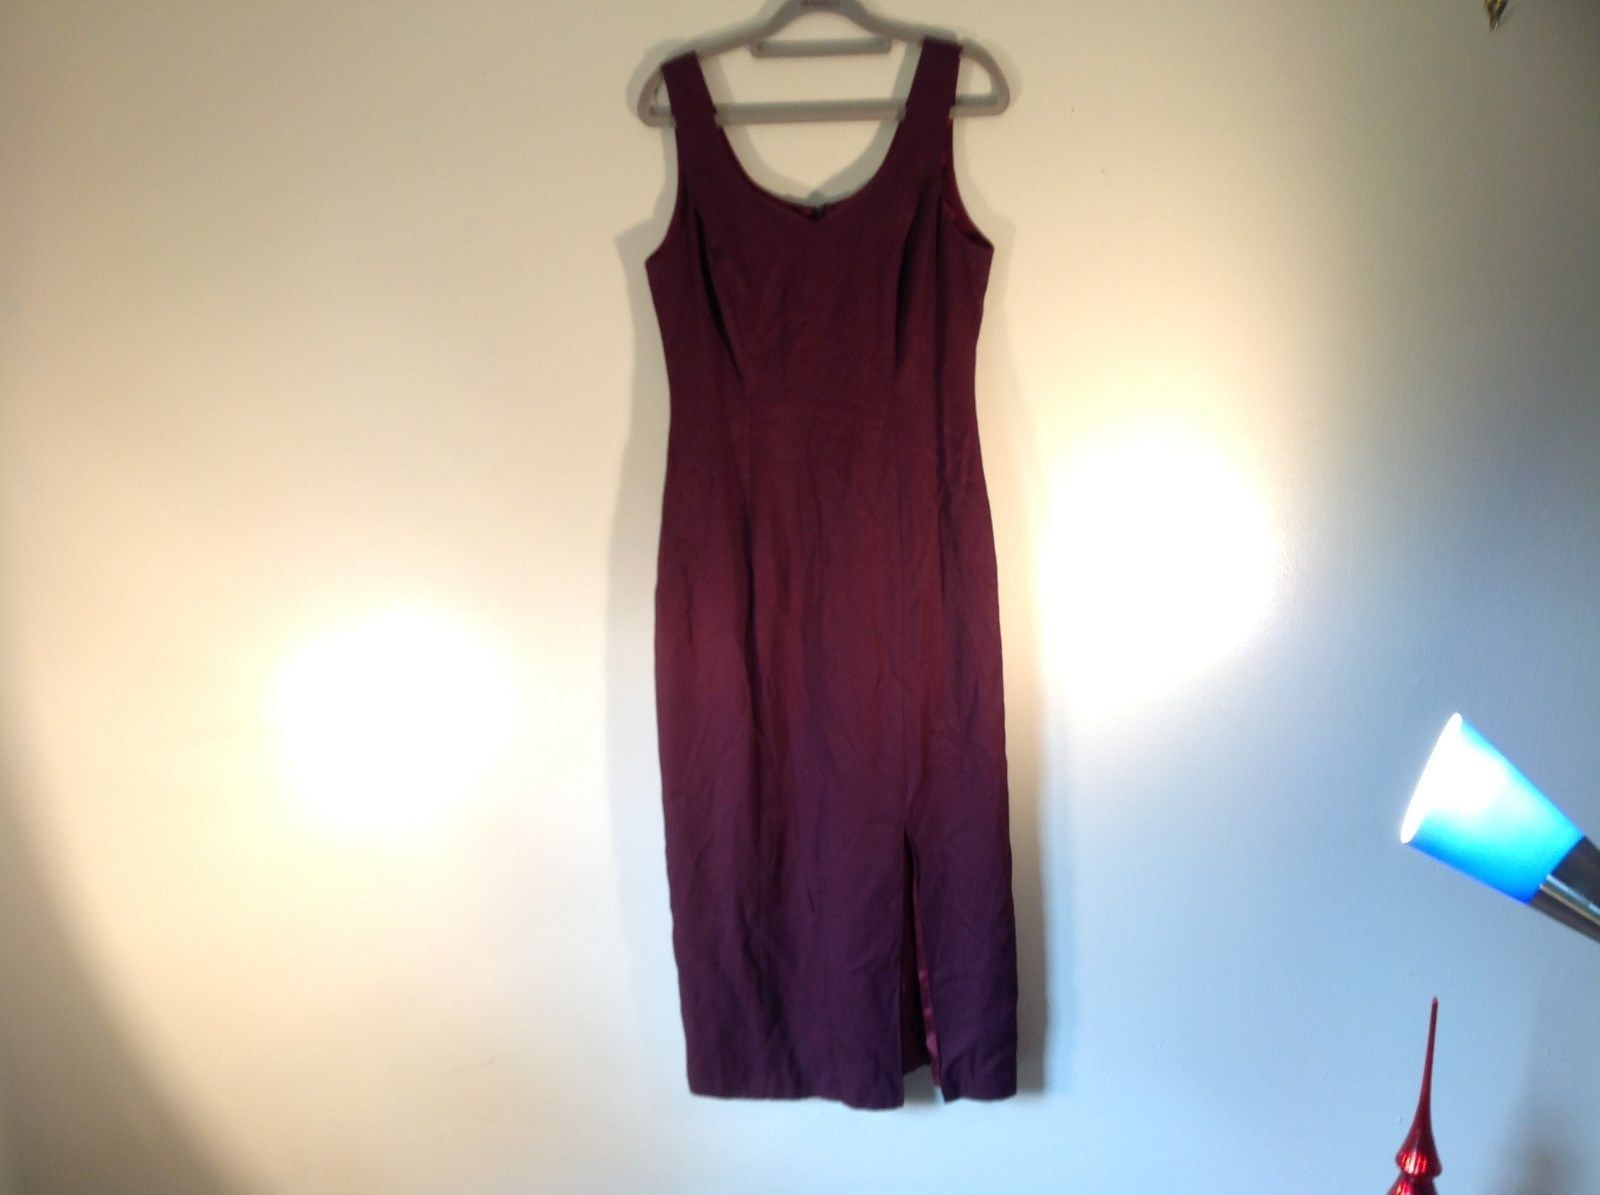 Very Nice Size 8 Lined Burgundy Sleeveless Long Dress Made in USA CDC Petites